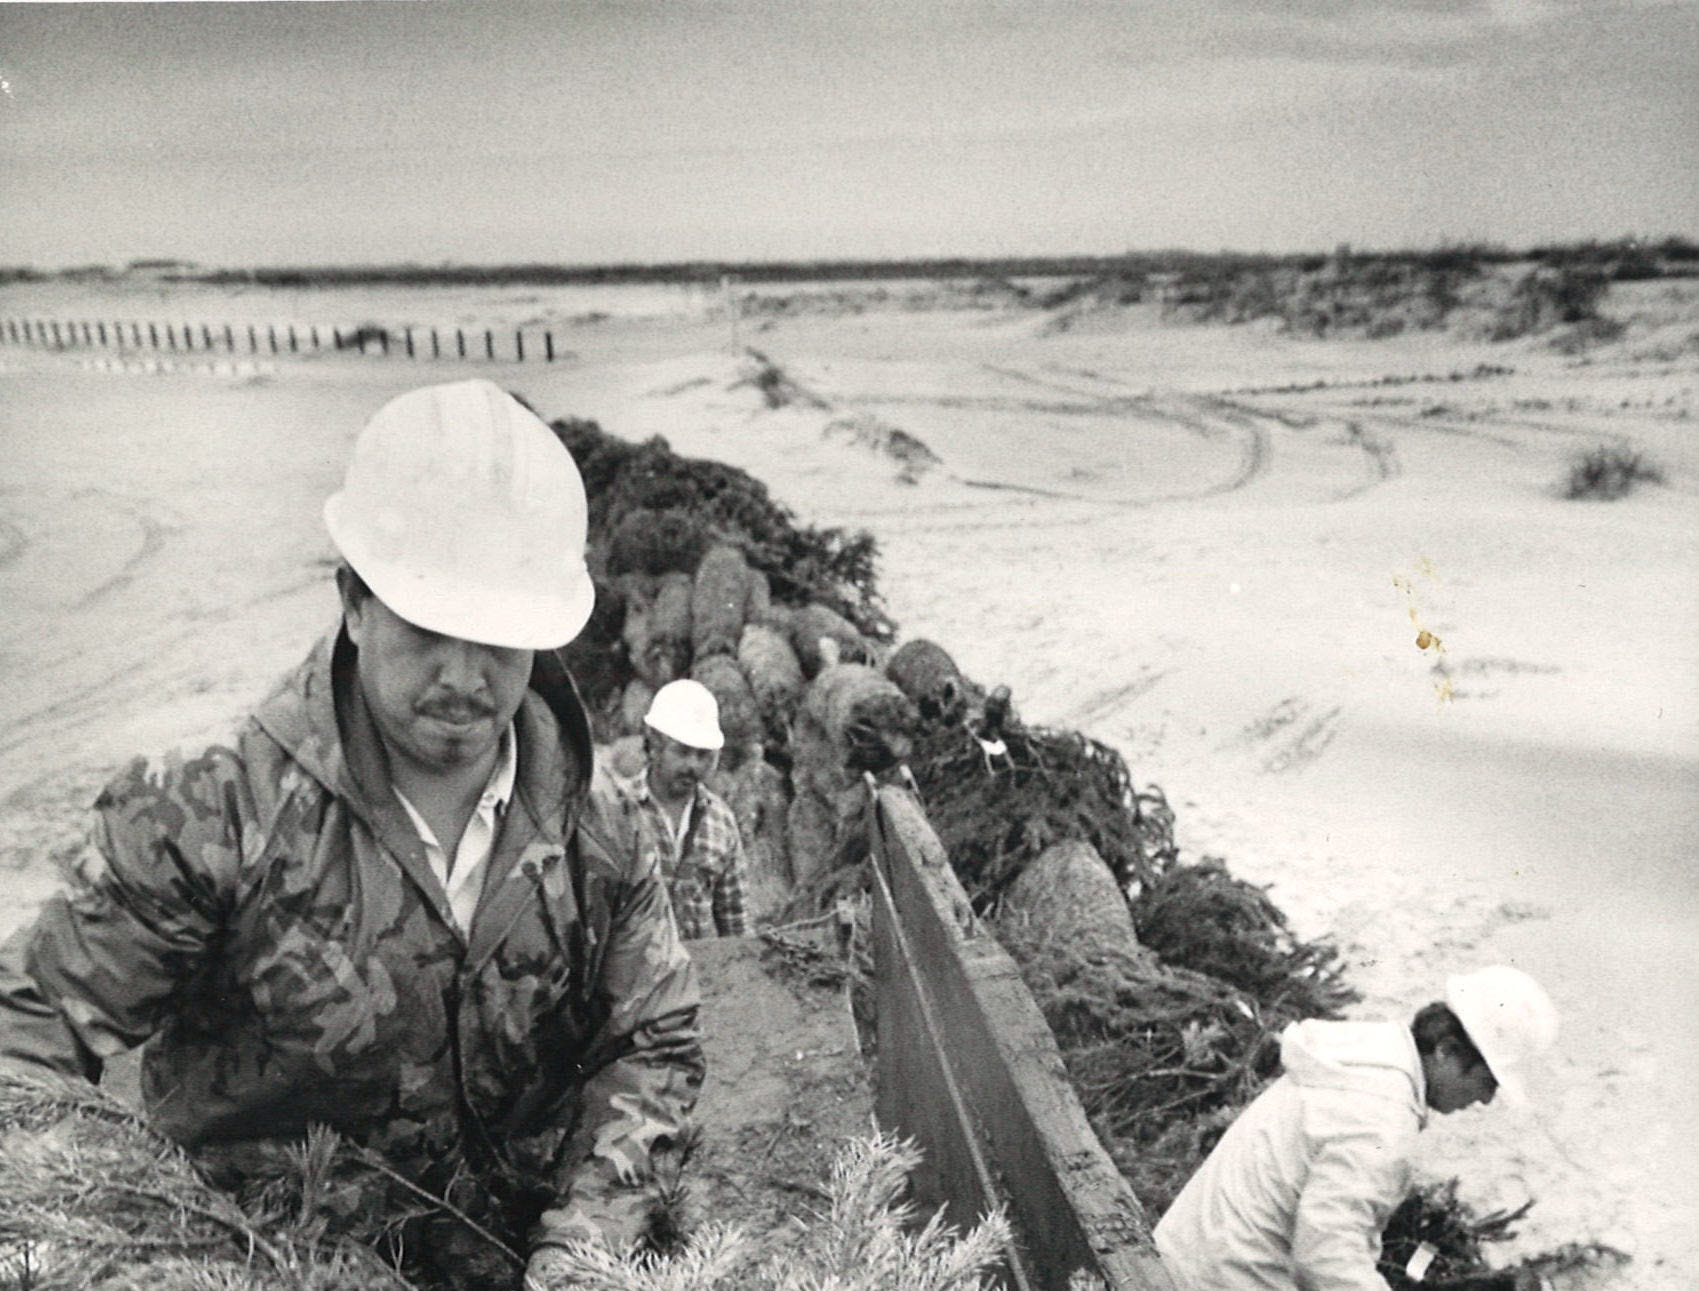 Servando Sosa (foreground) unloads Christmas trees with the help of other Nueces County Road Department workers on Dec. 30, 1986. The truckload of tree was part of about 2,000 trees unloaded on Padre Island to help restore the dunes.